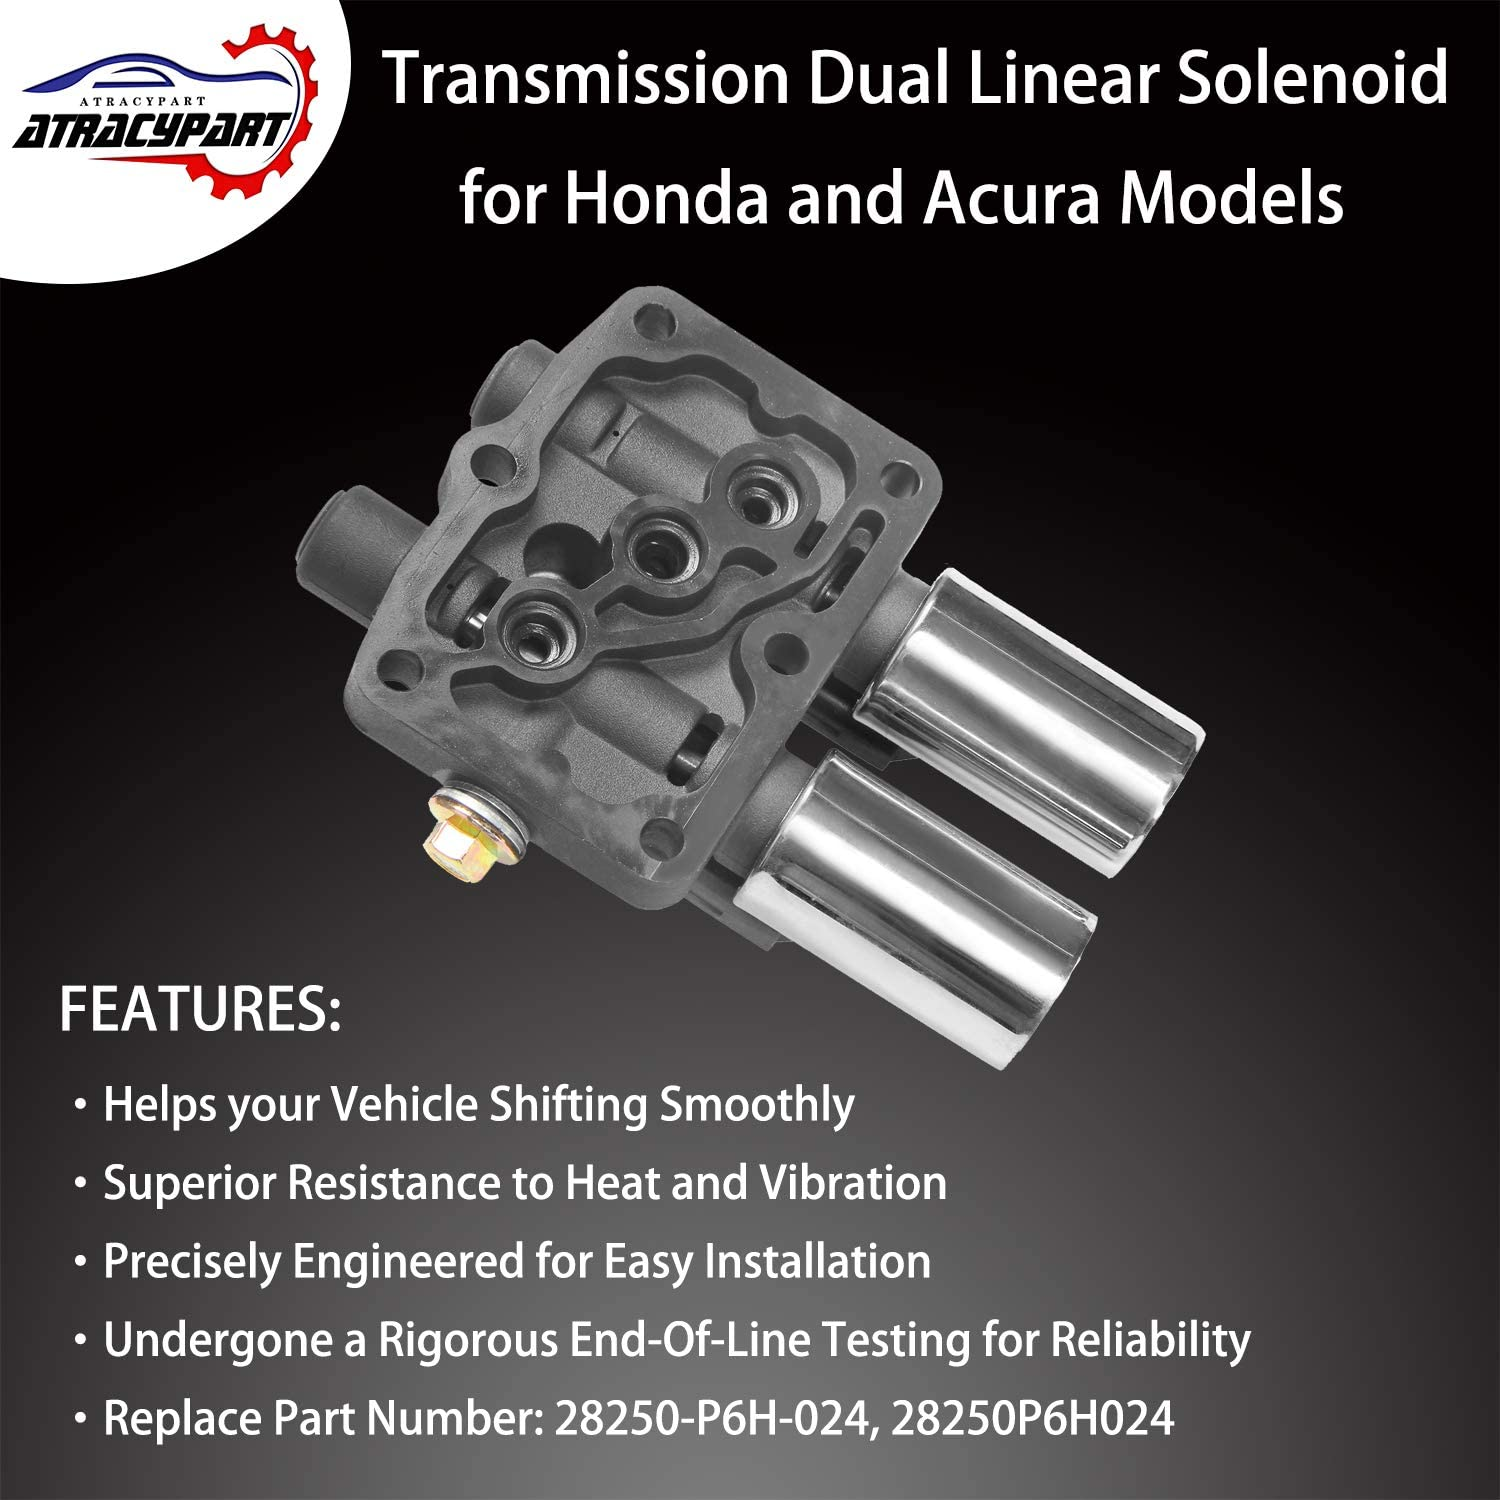 Transmission Dual Linear Solenoid with 1PCS Gasket and 3PCS O-Rings Compatible with Honda Accord Odyssey Pilot Prelude Acura CL TL MDX Replace Part Number 28250-P6H-024 Model A